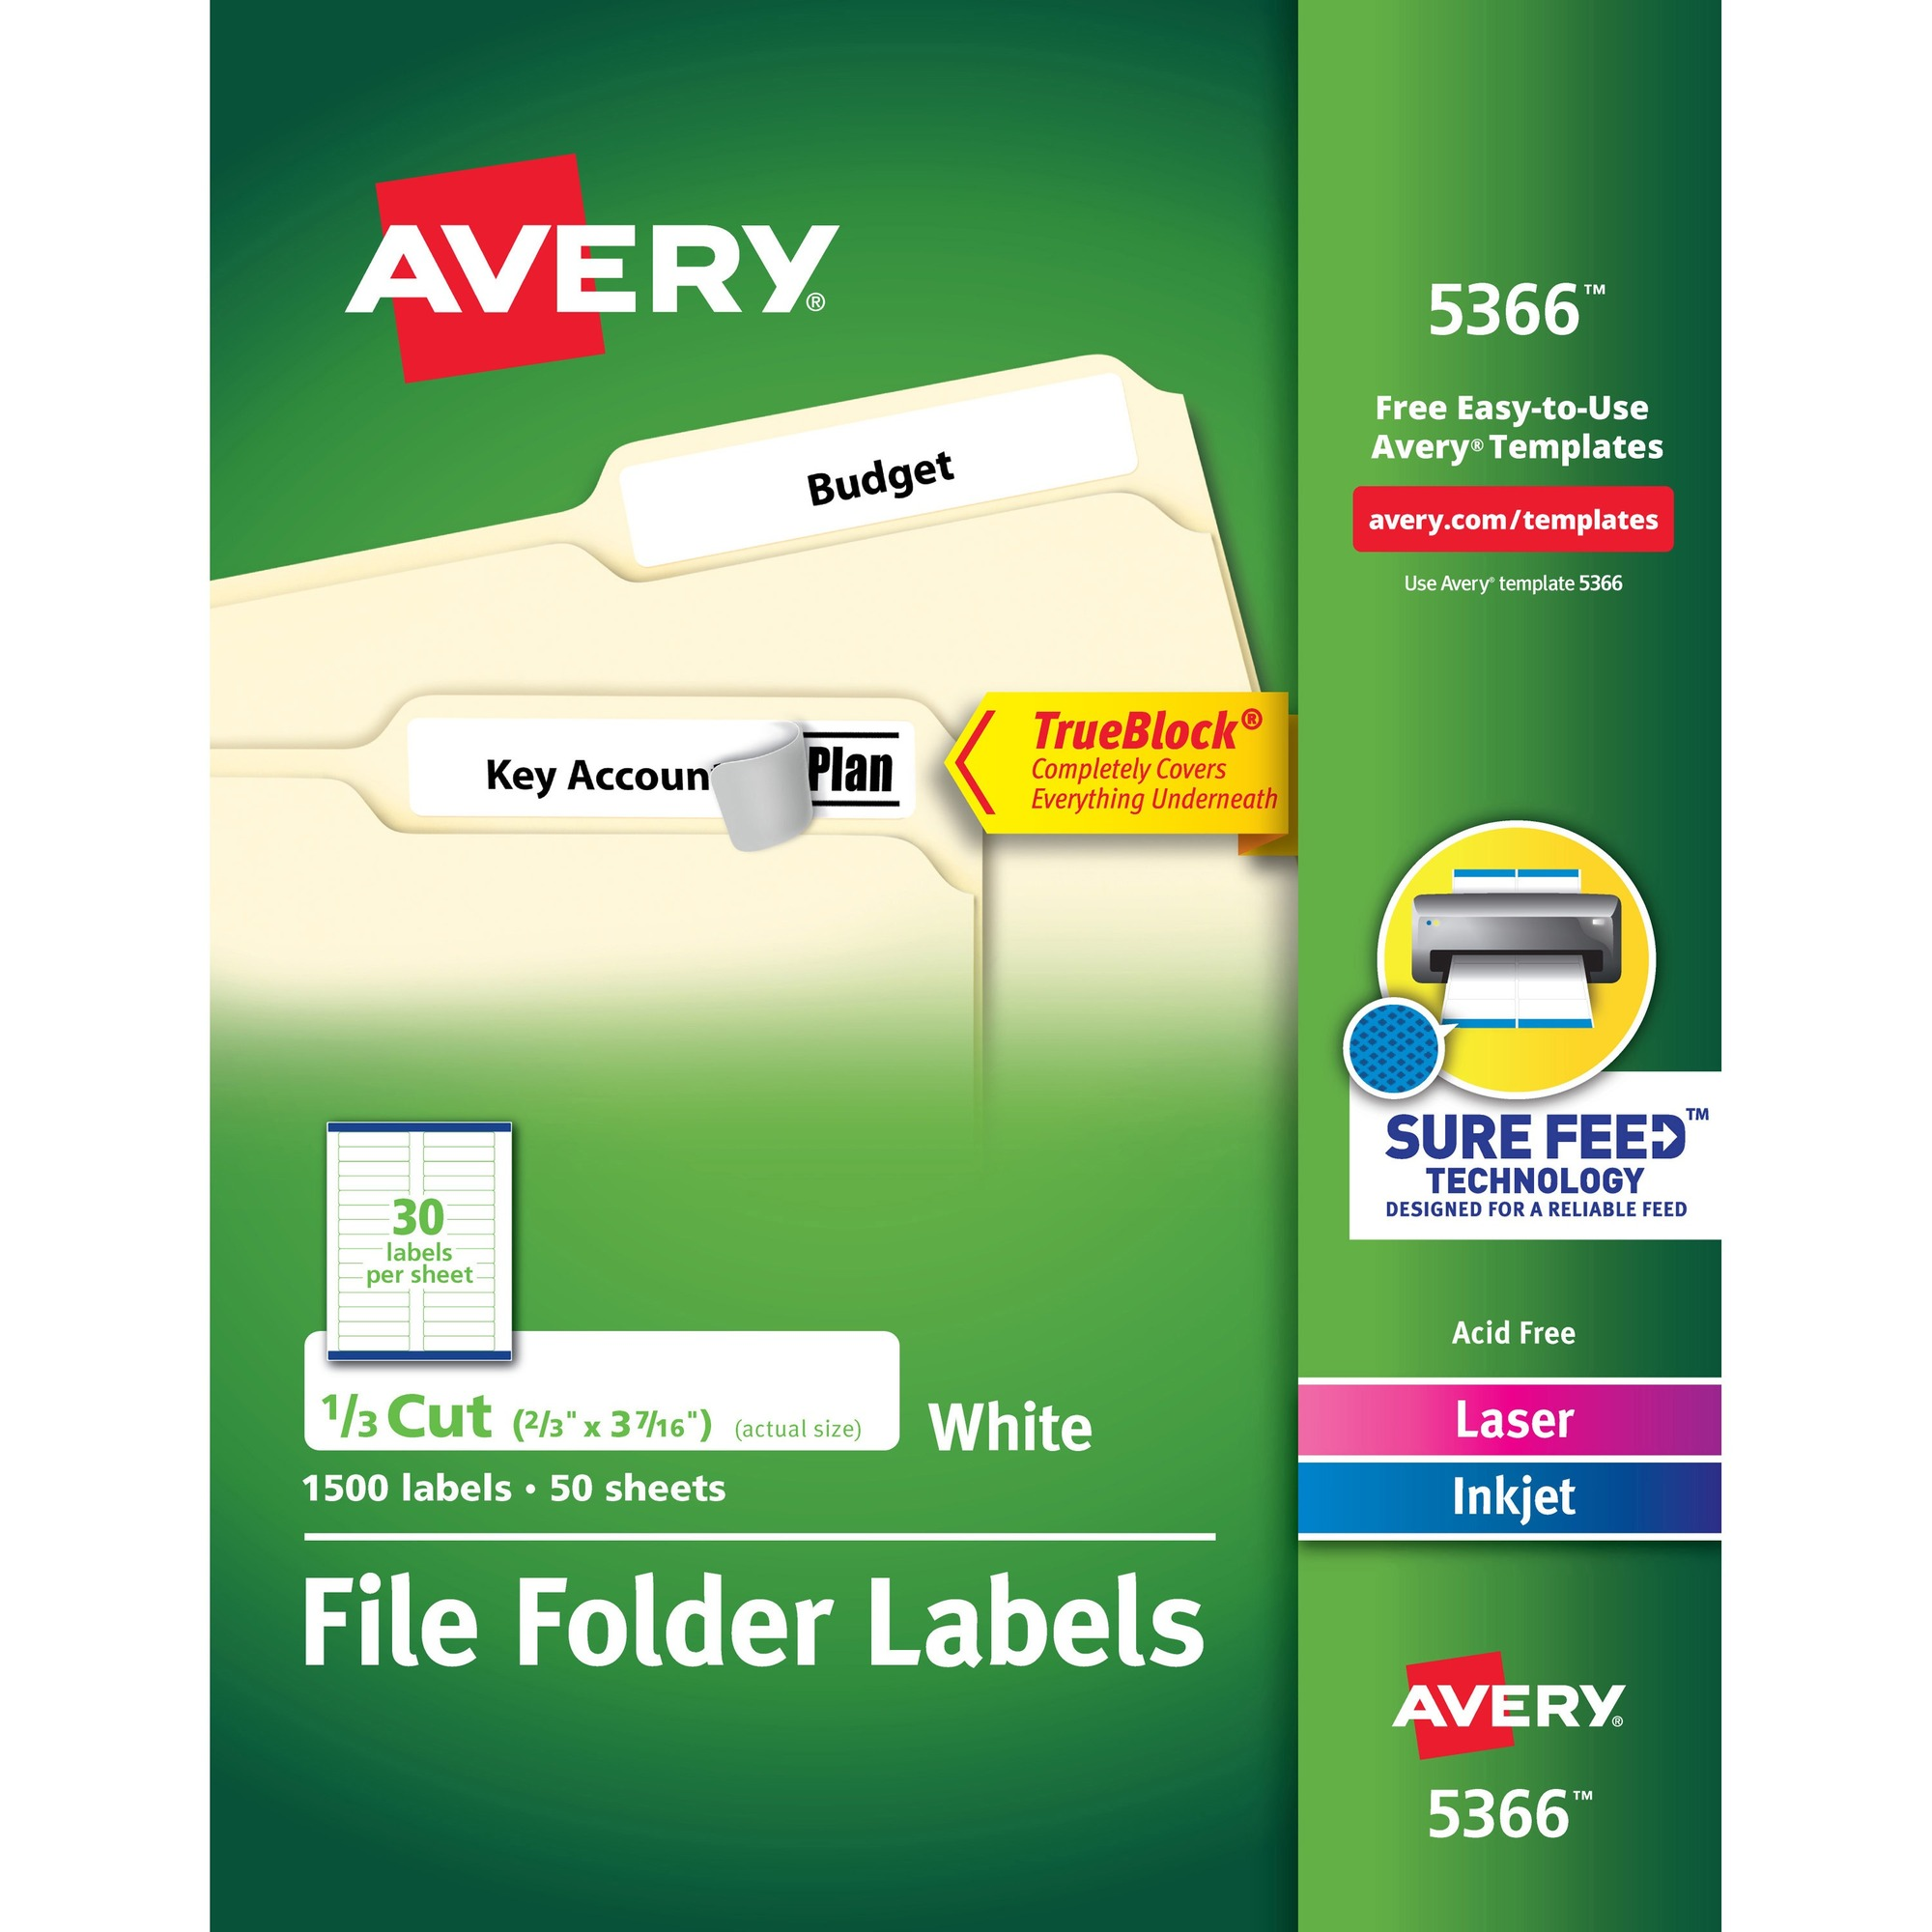 Ave5366 avery permanent file folder labels with trueblock technology ave5366 saigontimesfo